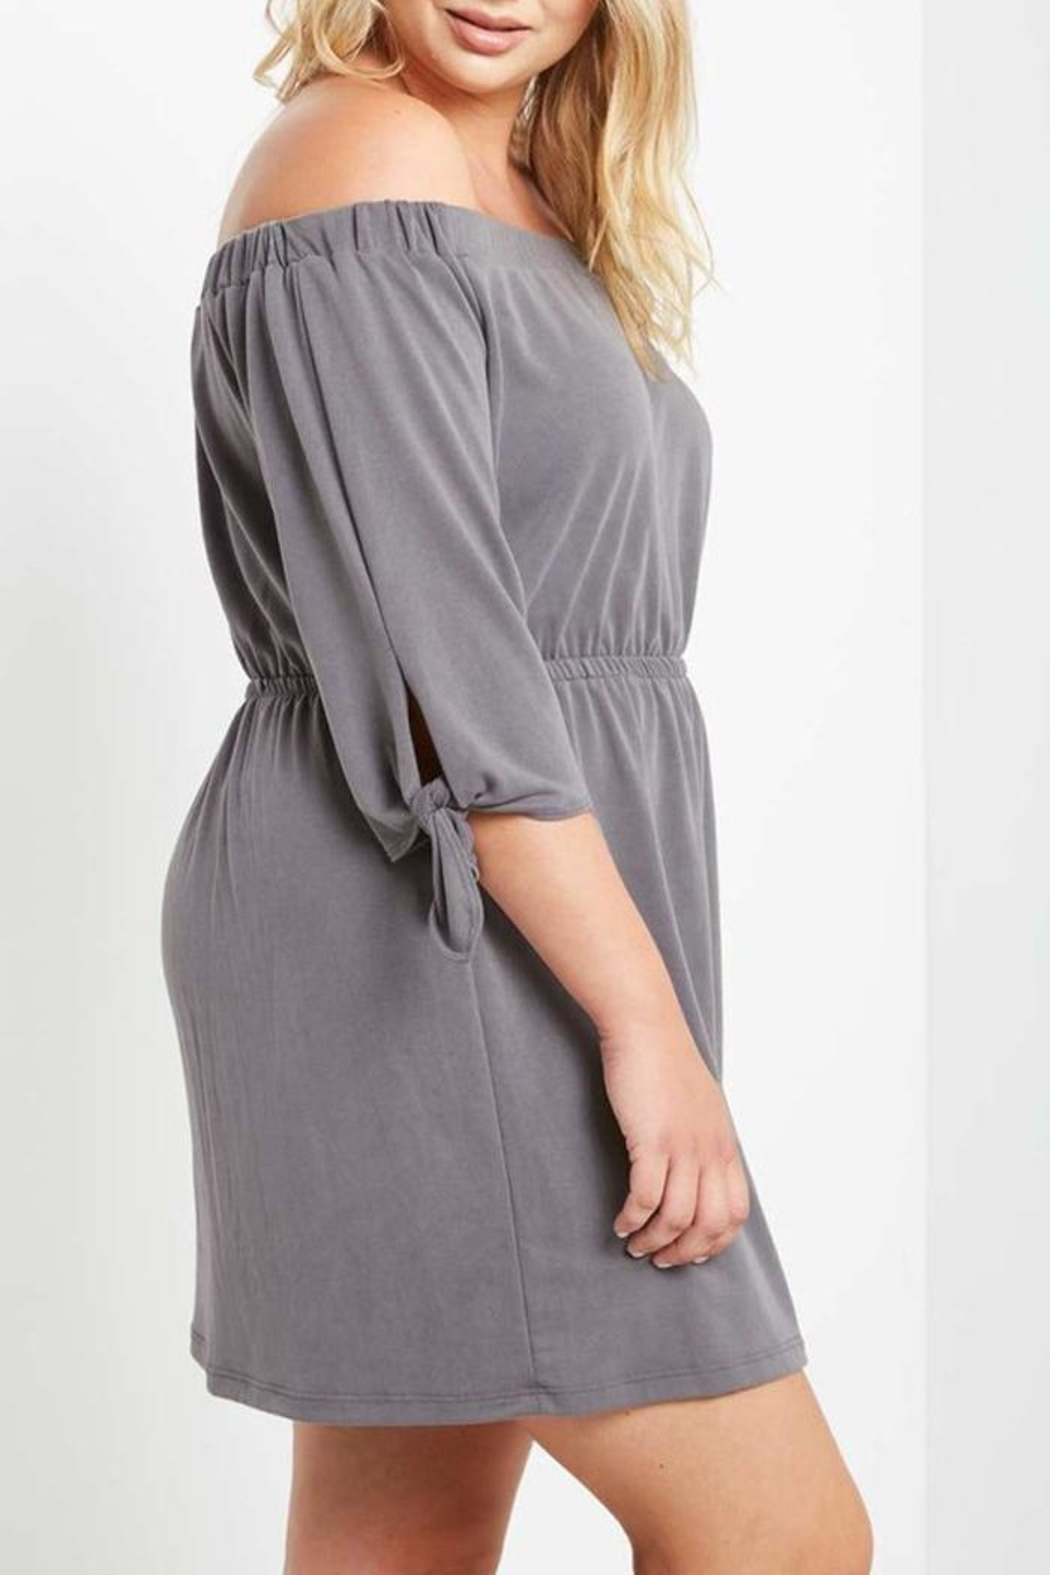 Mai Tai Charwal Off-Shoulder Dress - Side Cropped Image